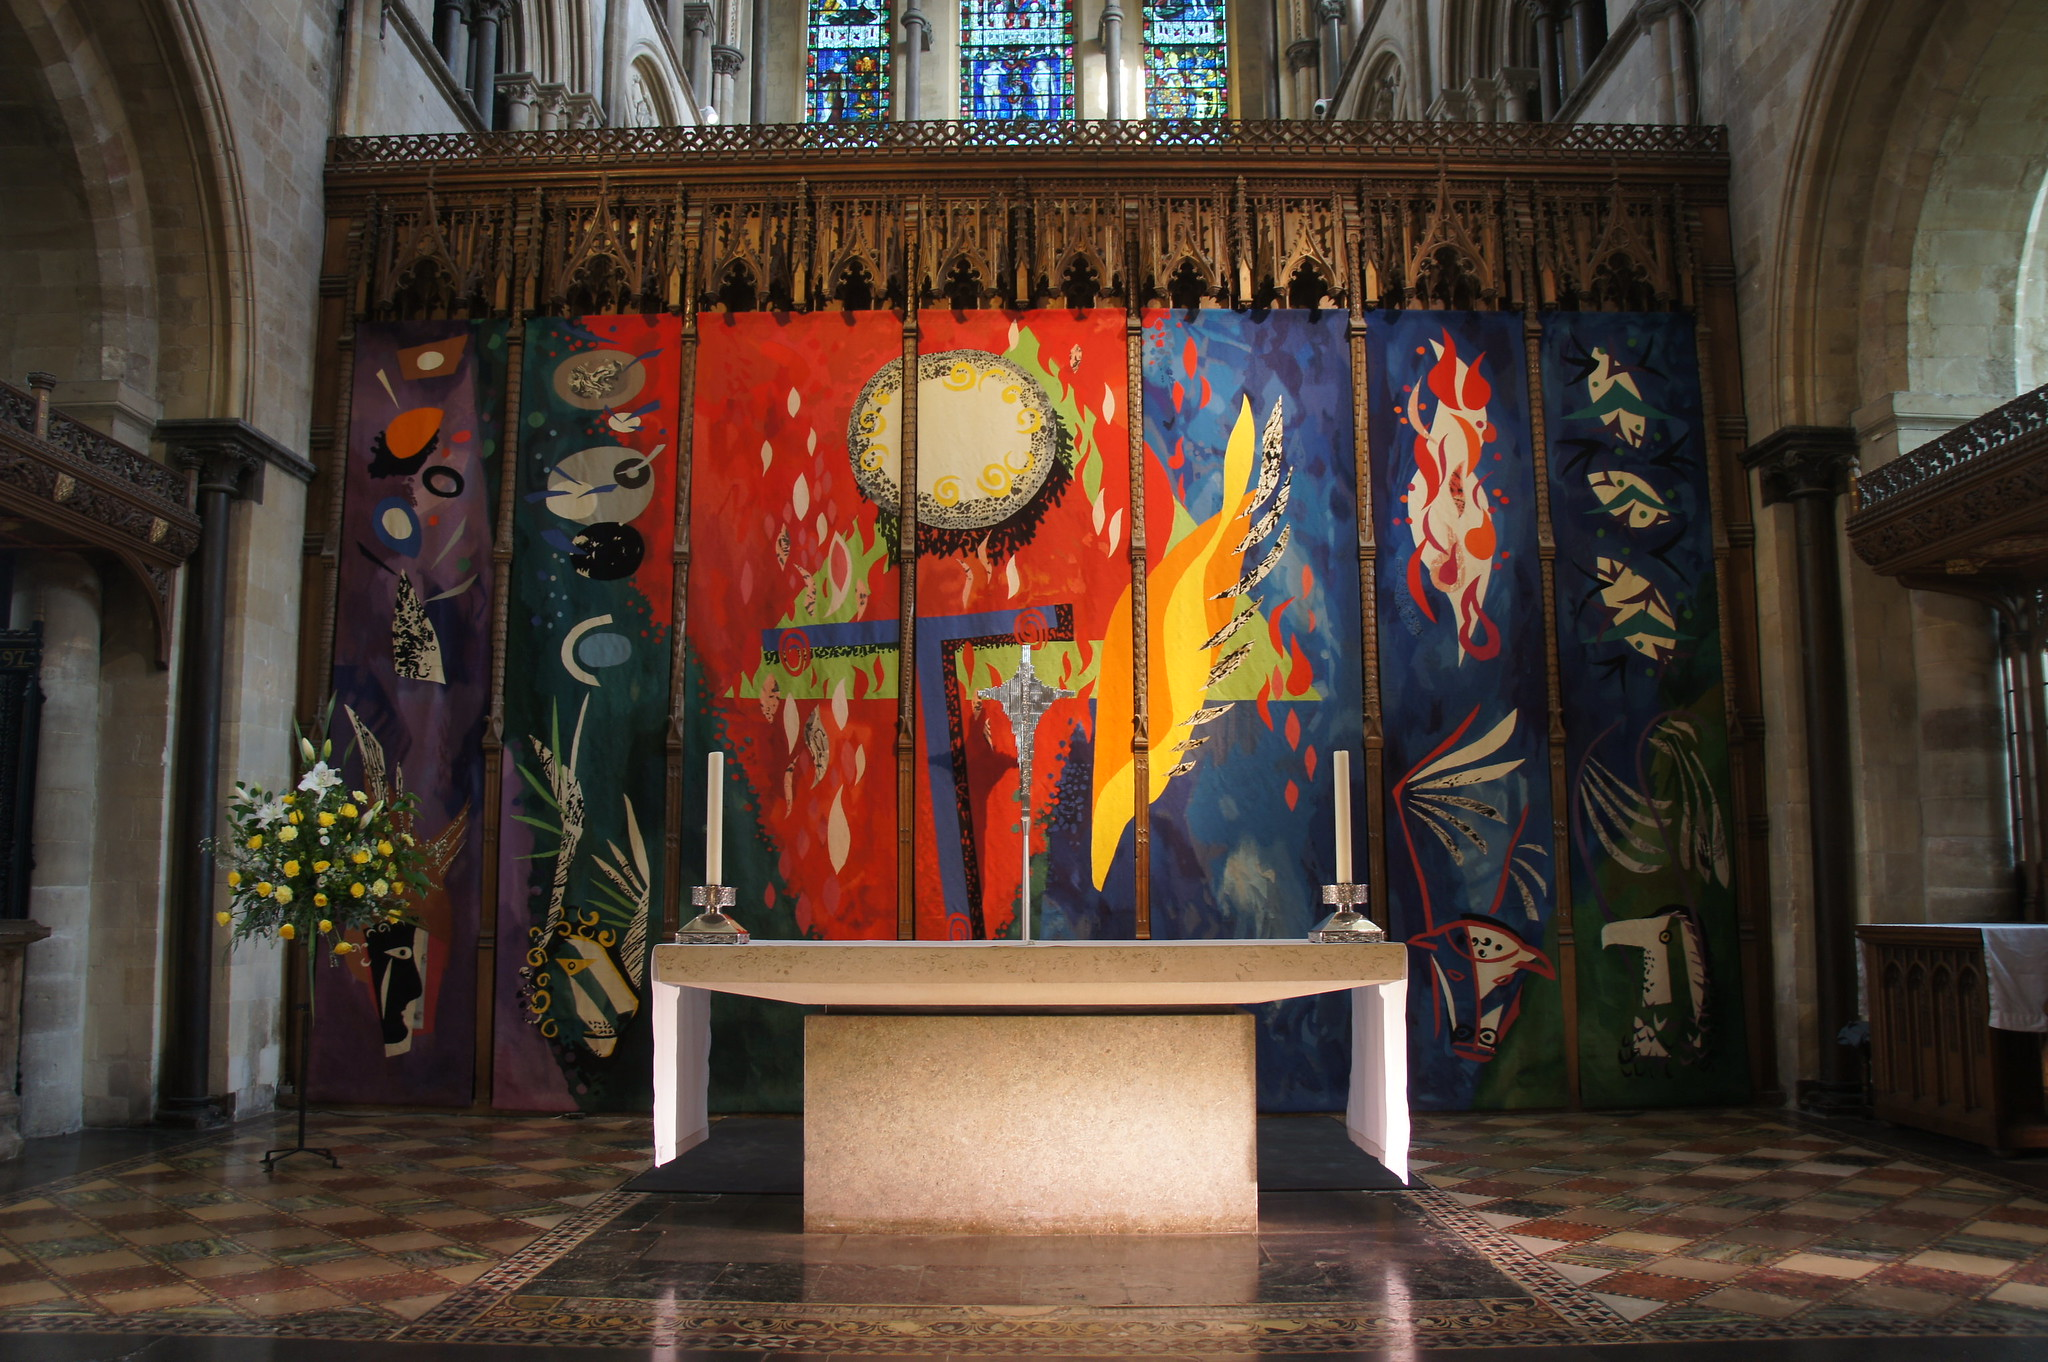 John Piper's tapestry in Chichester Cathedral, Photograph by Alwyn Ladell